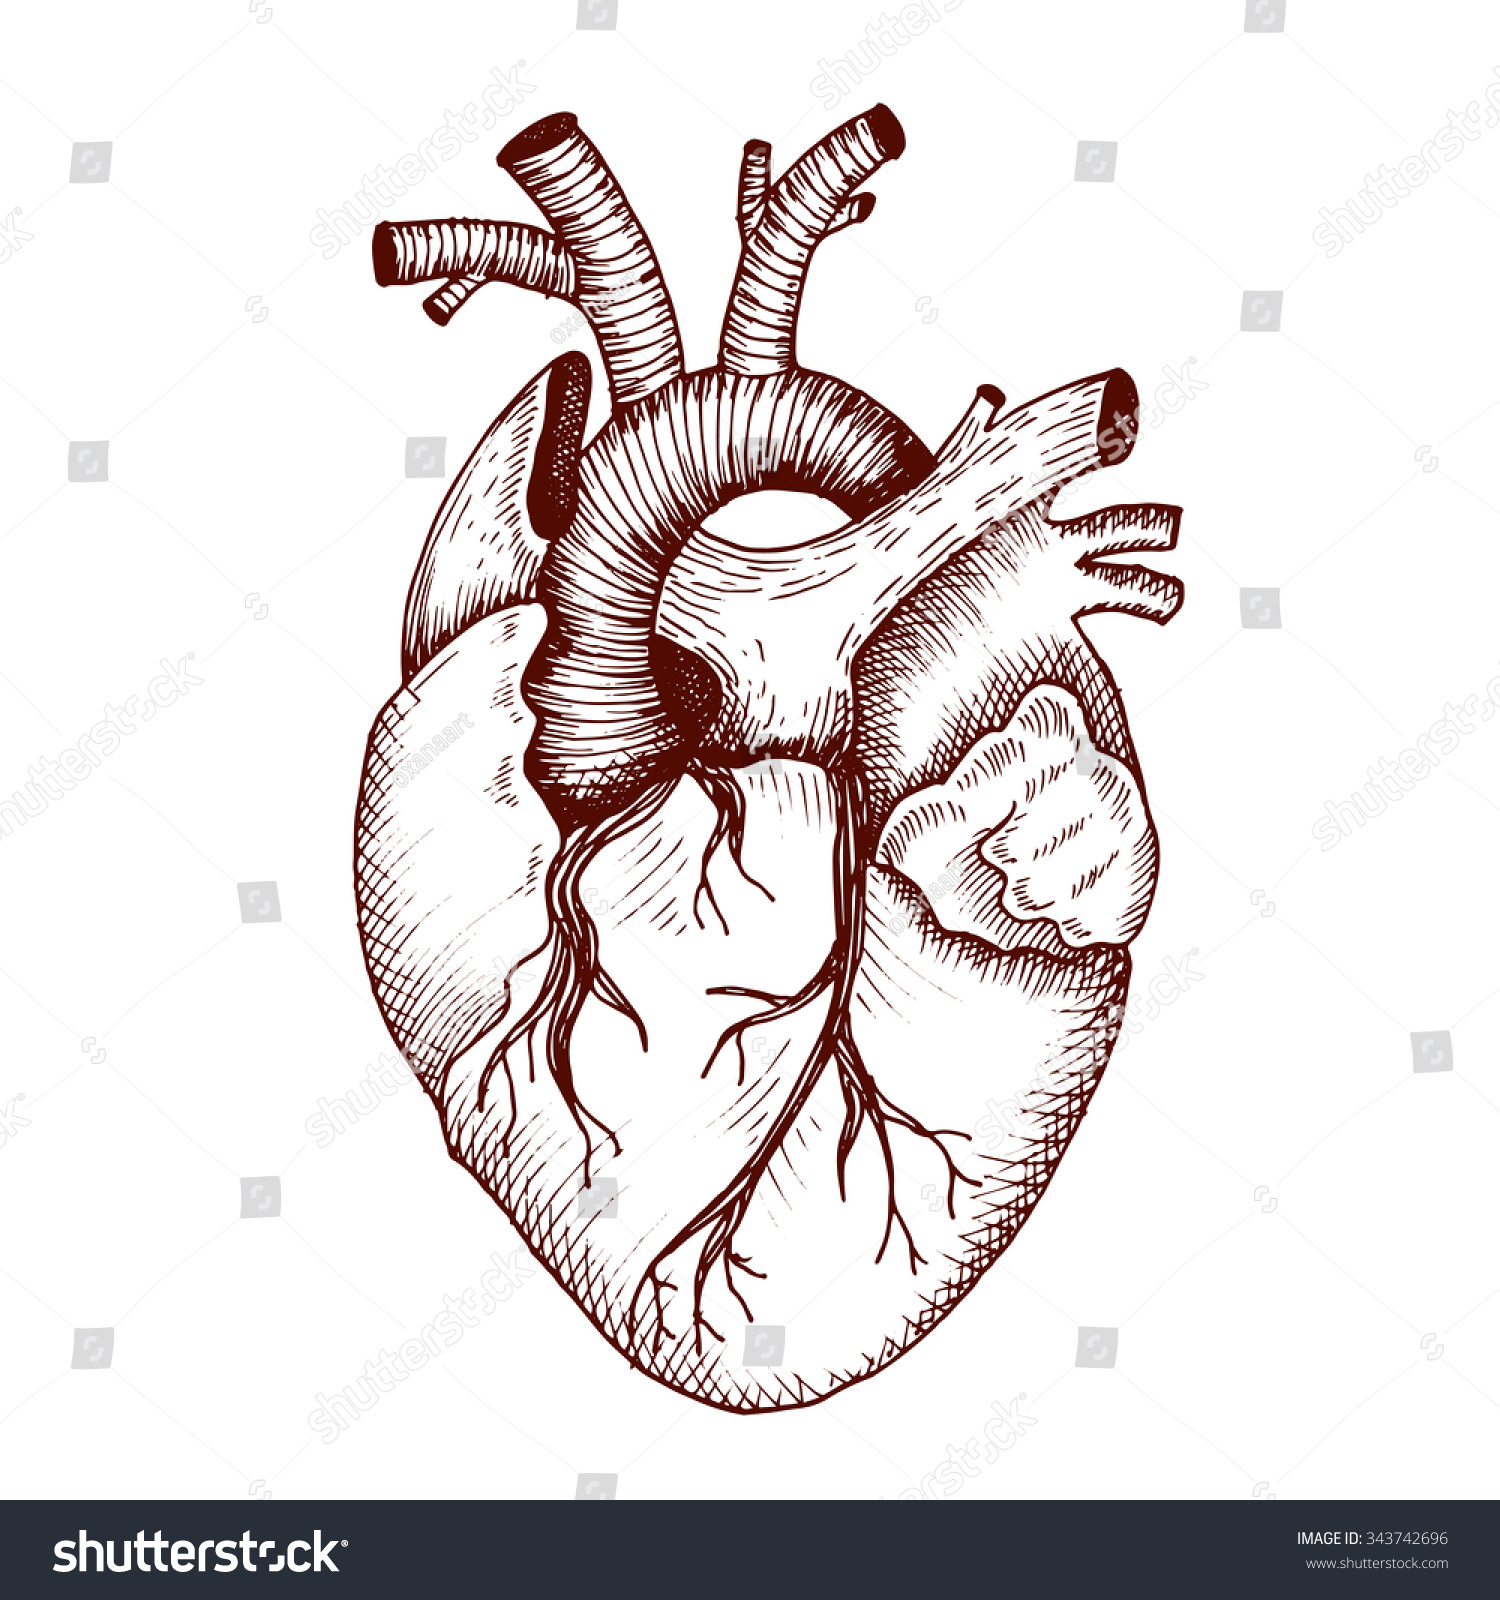 Anatomical Heart Vector Vintage Style Detailed Stock Photo (Photo ...